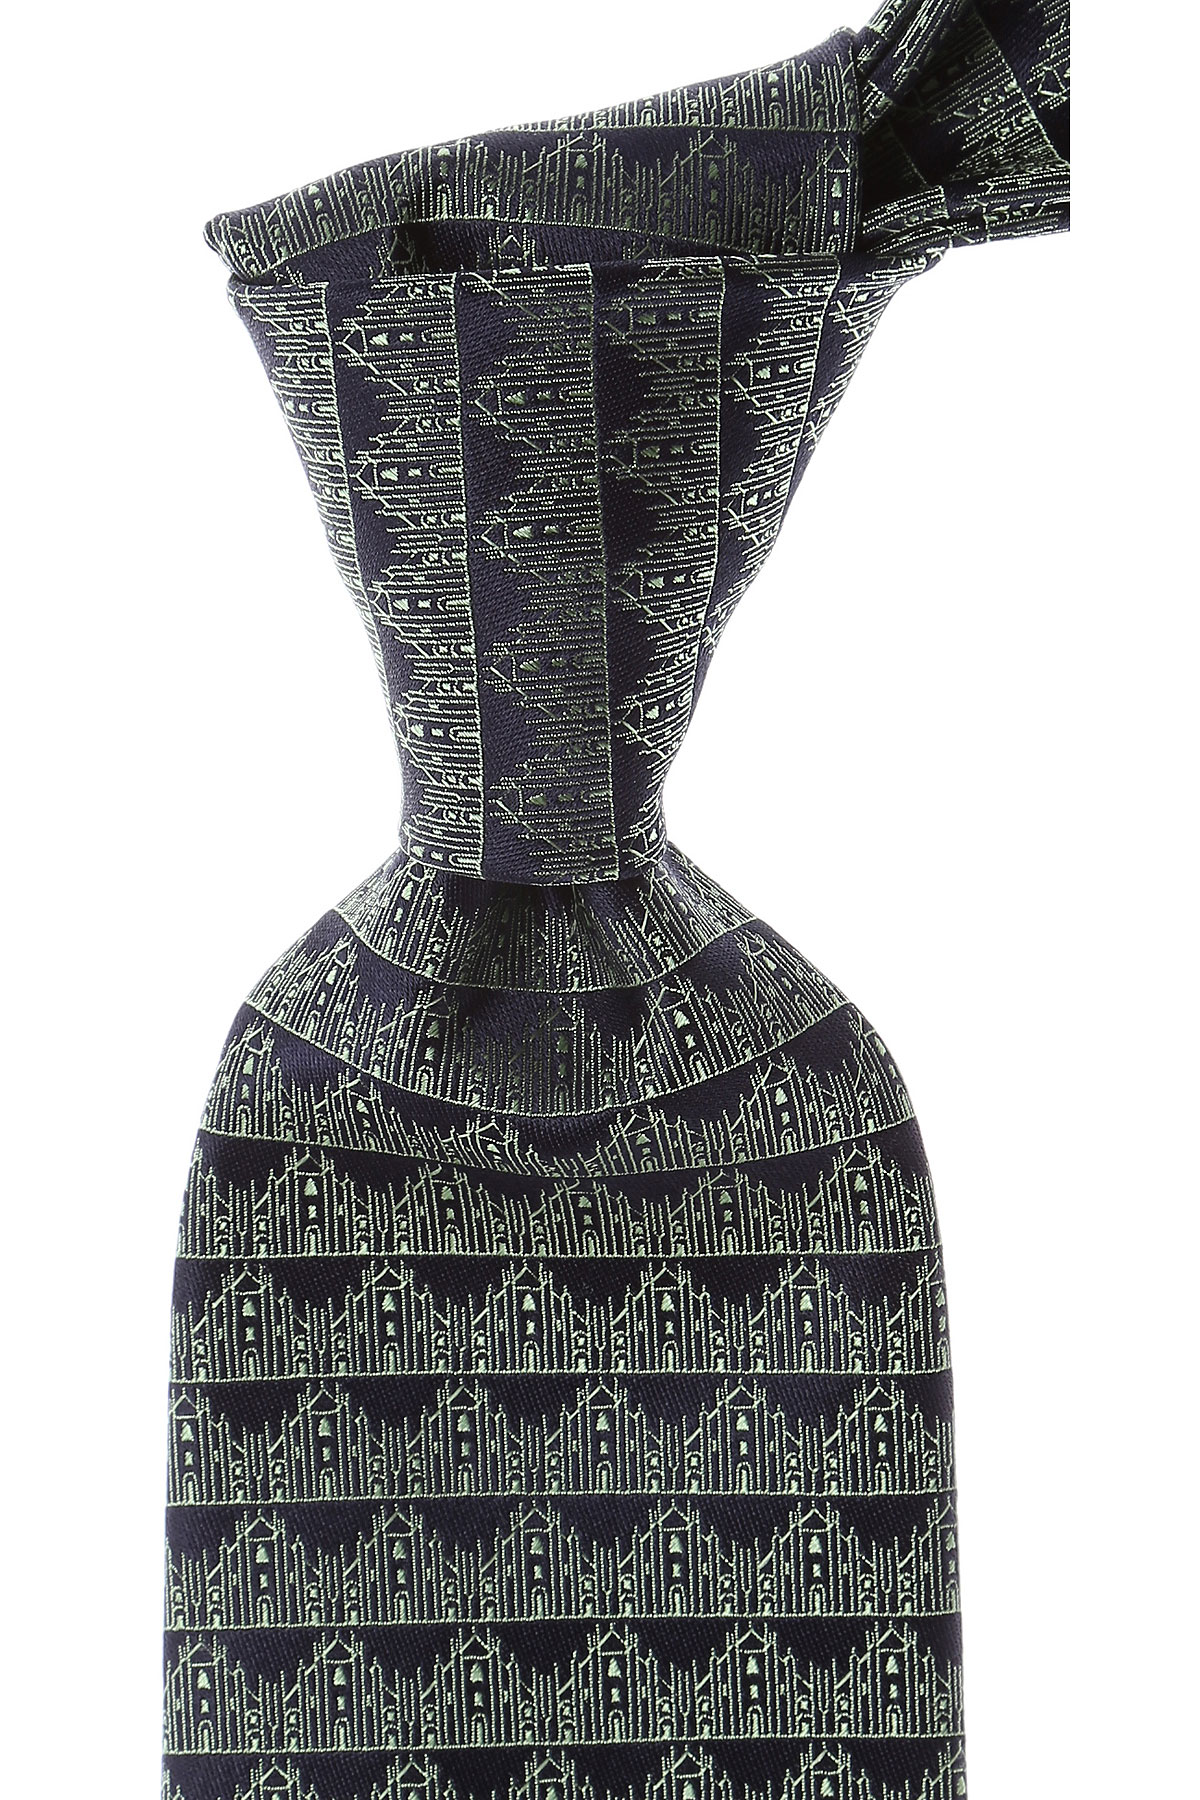 Ermenegildo_Zegna_Ties_On_Sale_Pastel_Green_Silk_2019